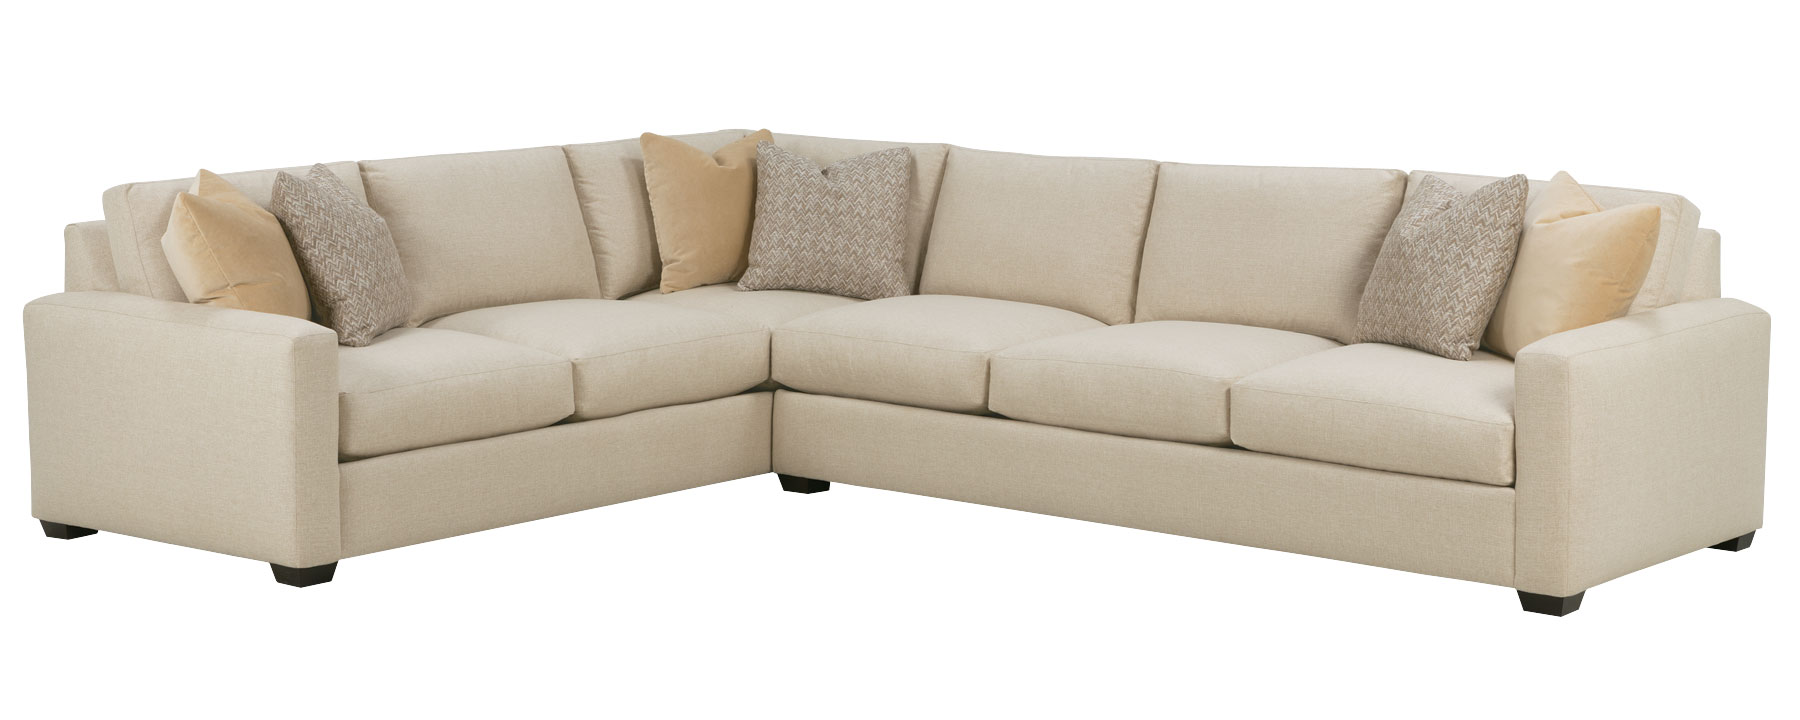 Deep seating large scale track arm sectional club furniture for Oversized sectionals